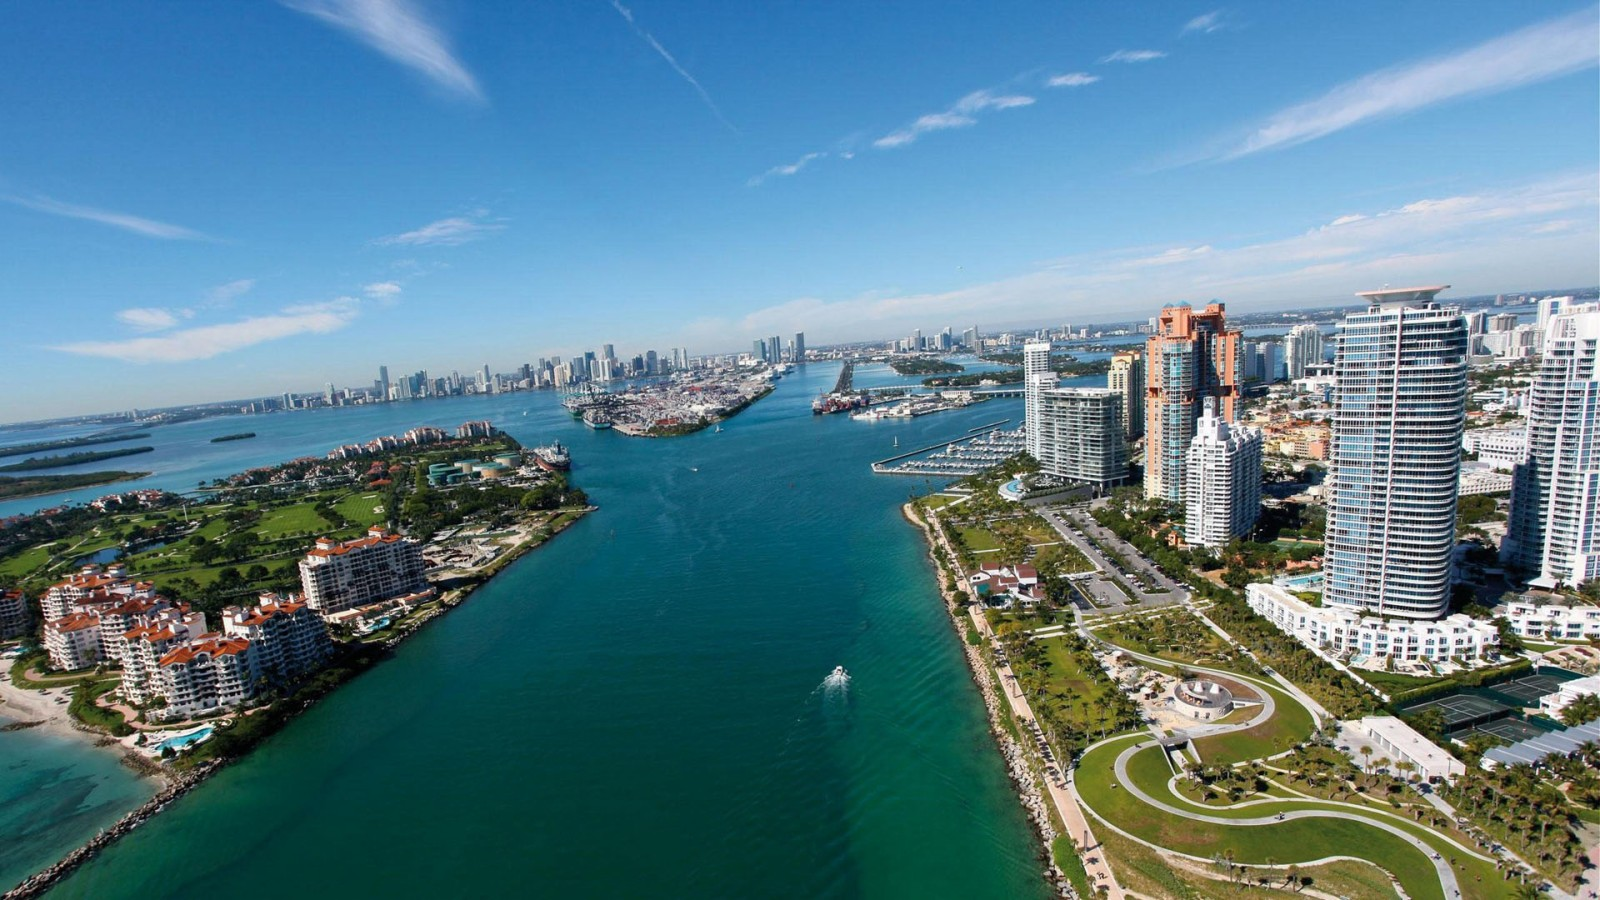 Miami Beach Florida City HD Wallpaper of City   hdwallpaper2013com 1600x900